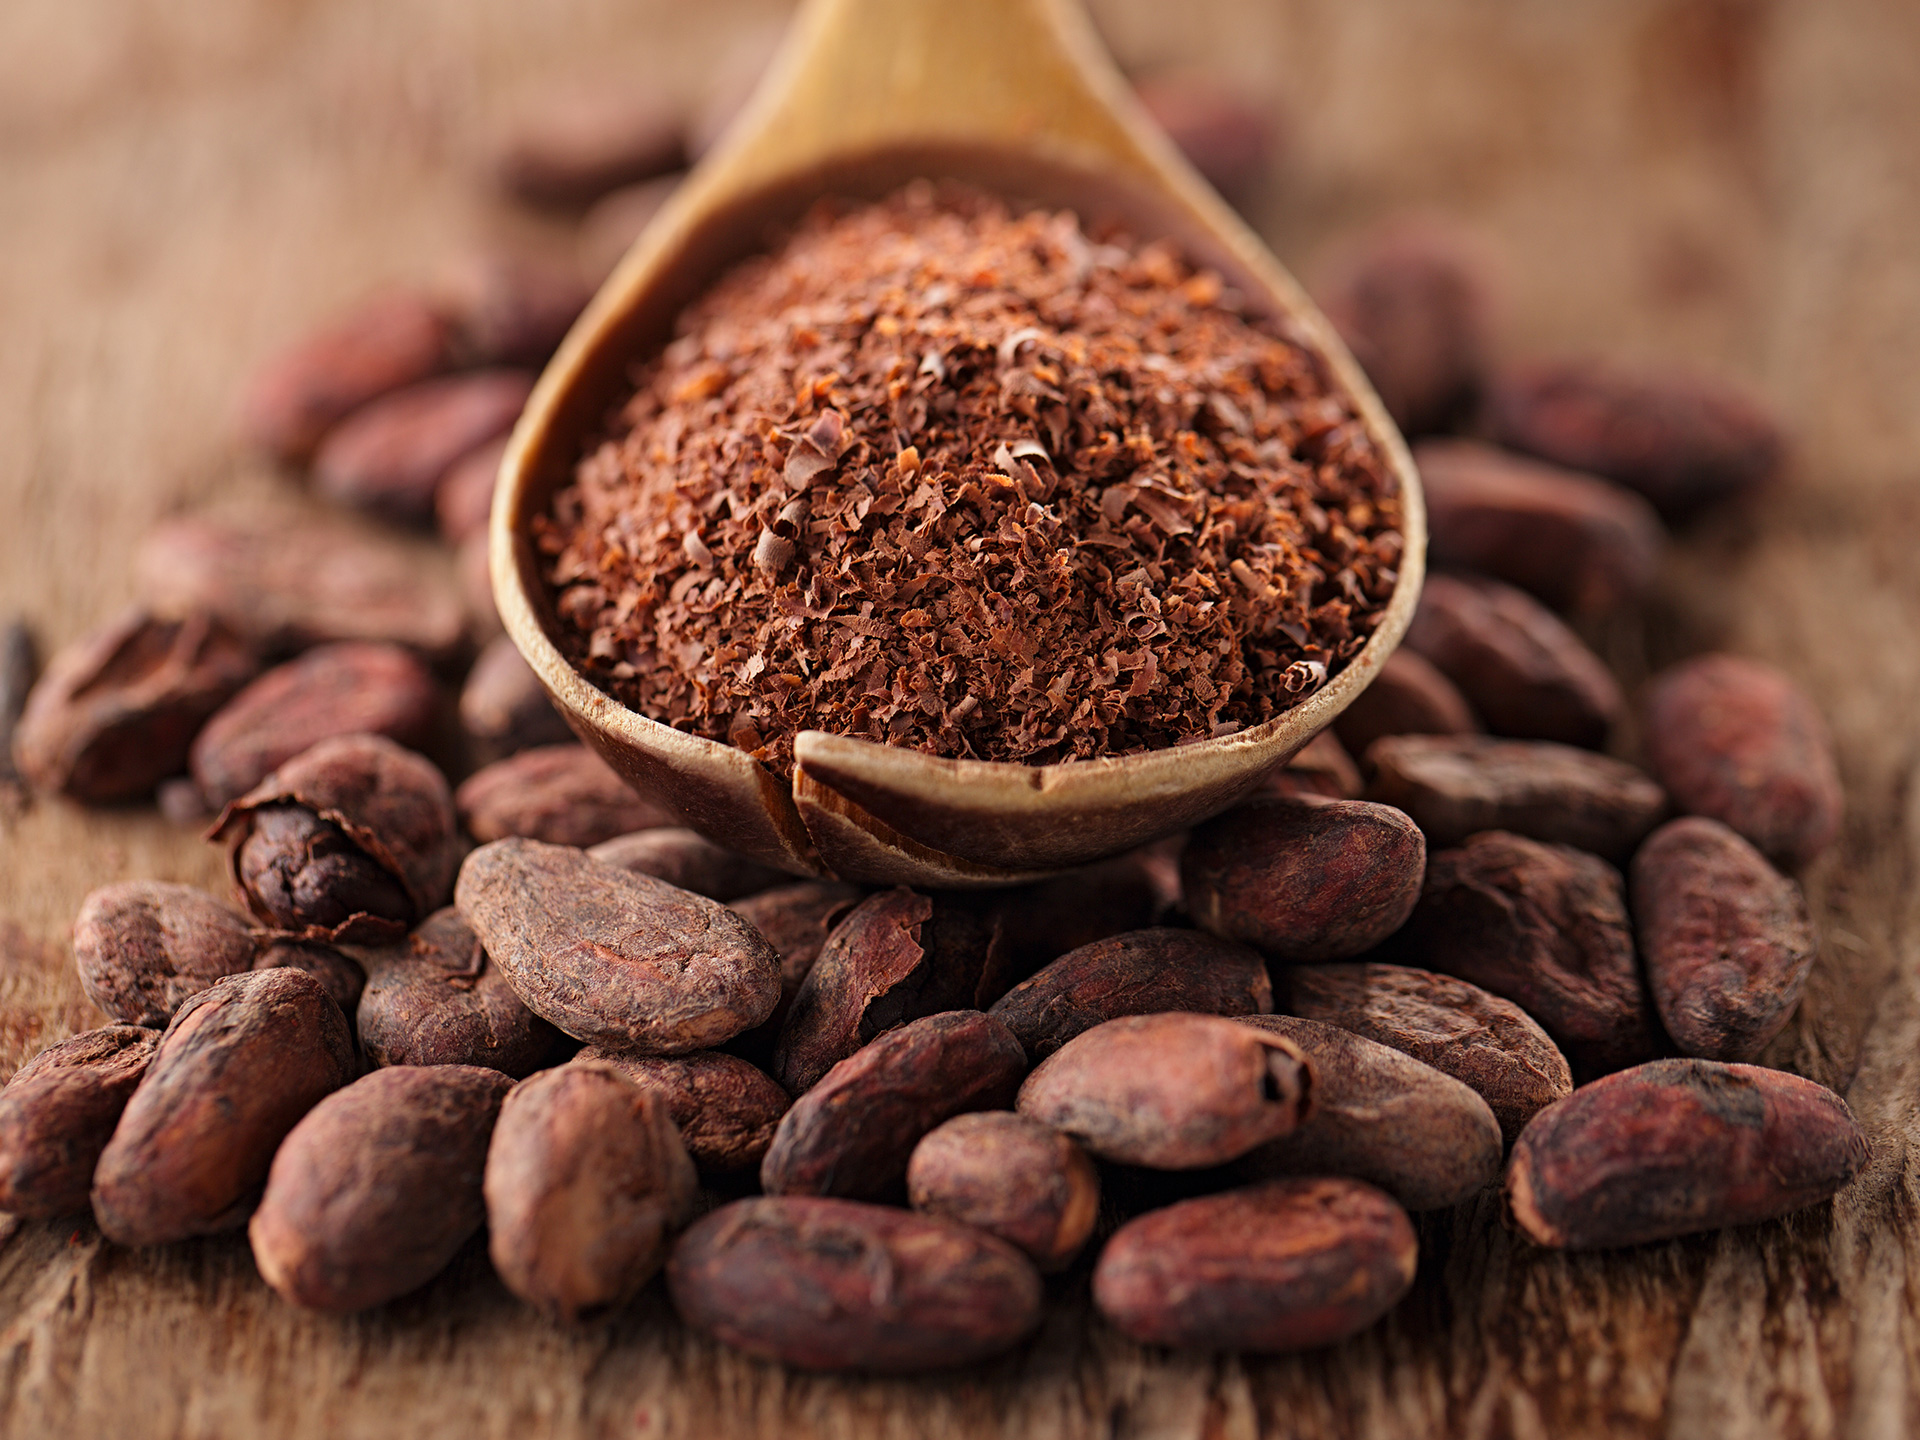 Cocoa Tree Health Benefits